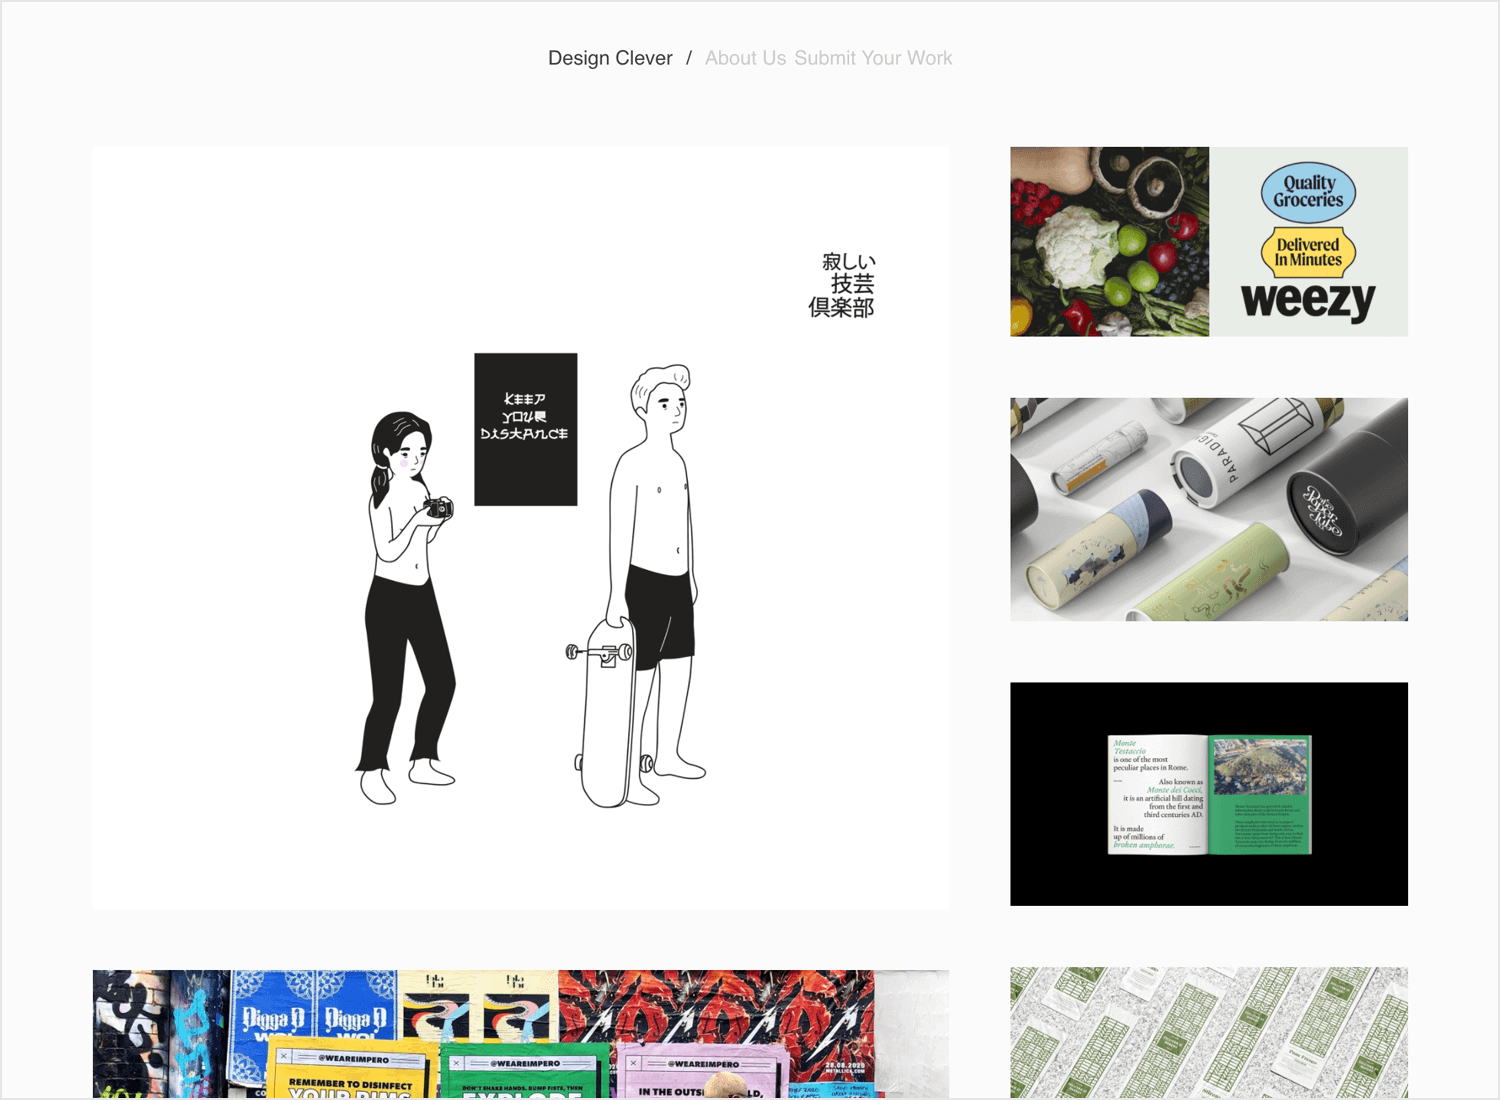 design clever as tumblr for inspiration